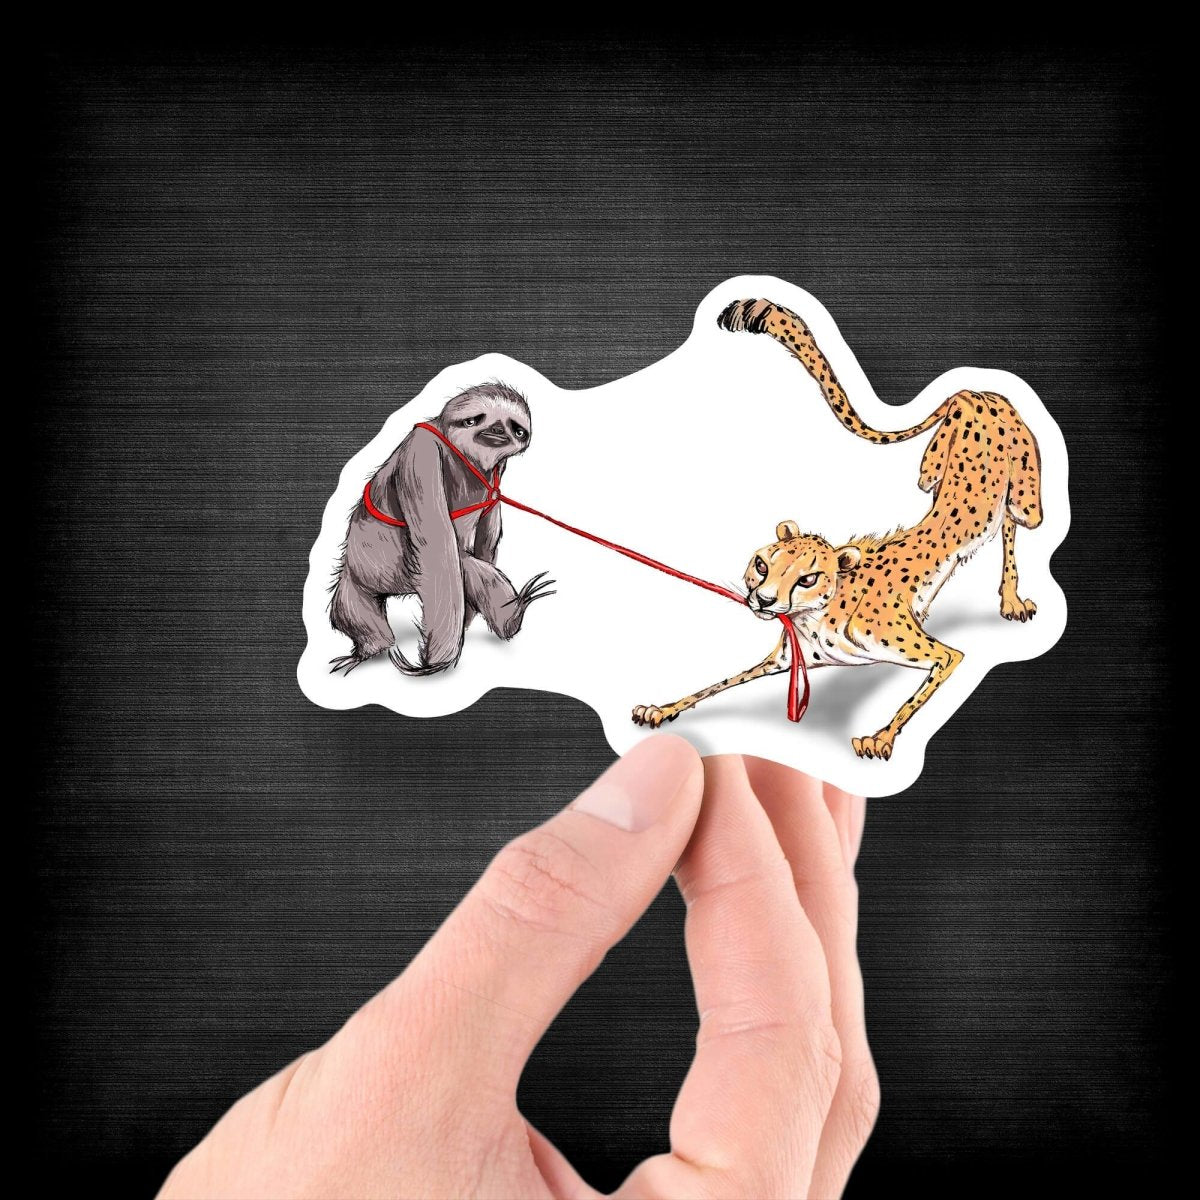 The Cheetah and the Sloth - Vinyl Sticker - Dan Pearce Sticker Shop